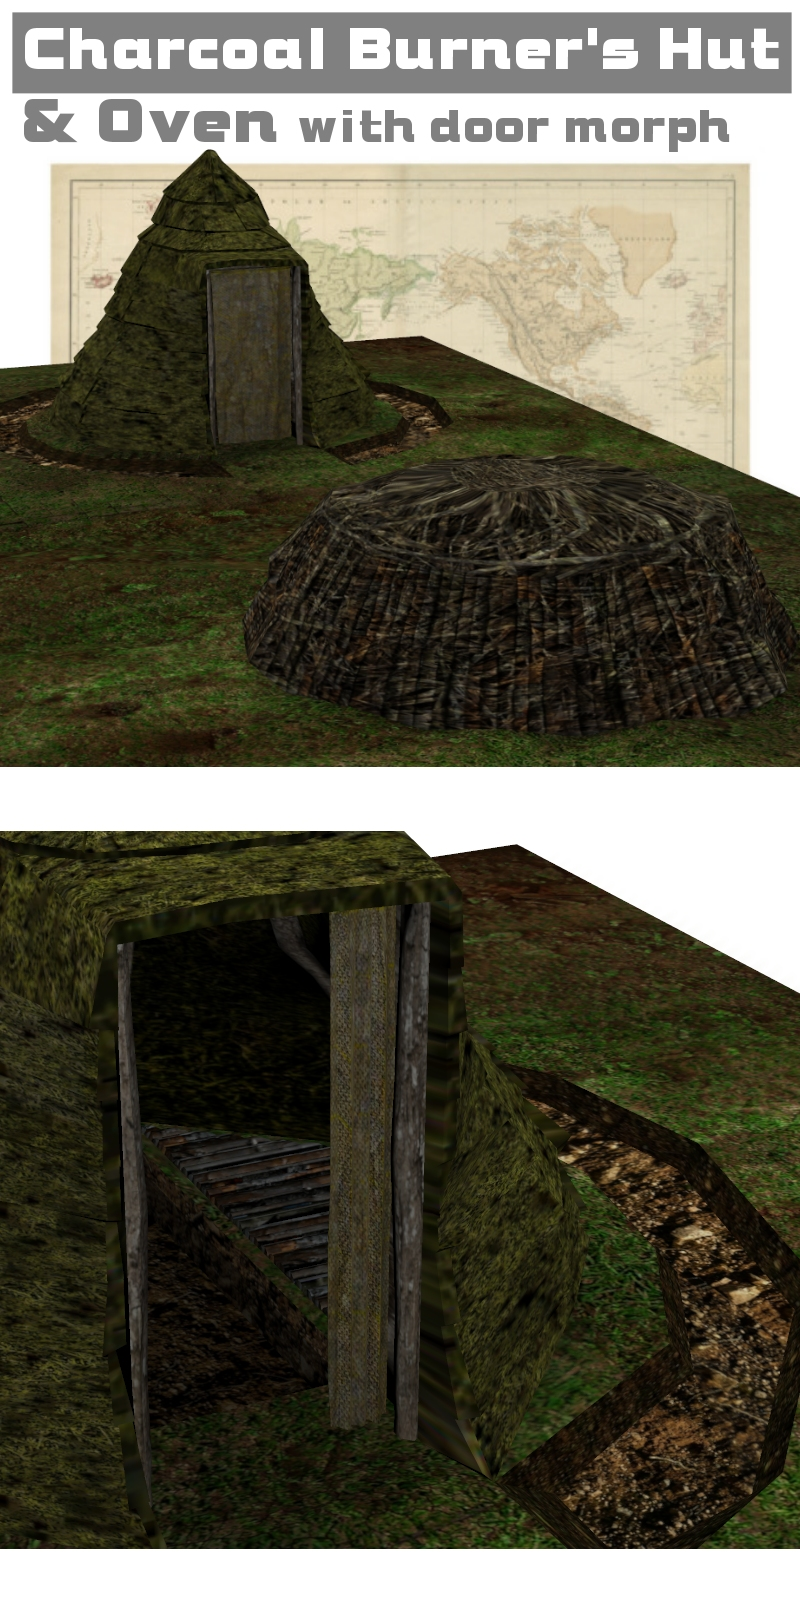 Charcoal Burner's Hut and Oven